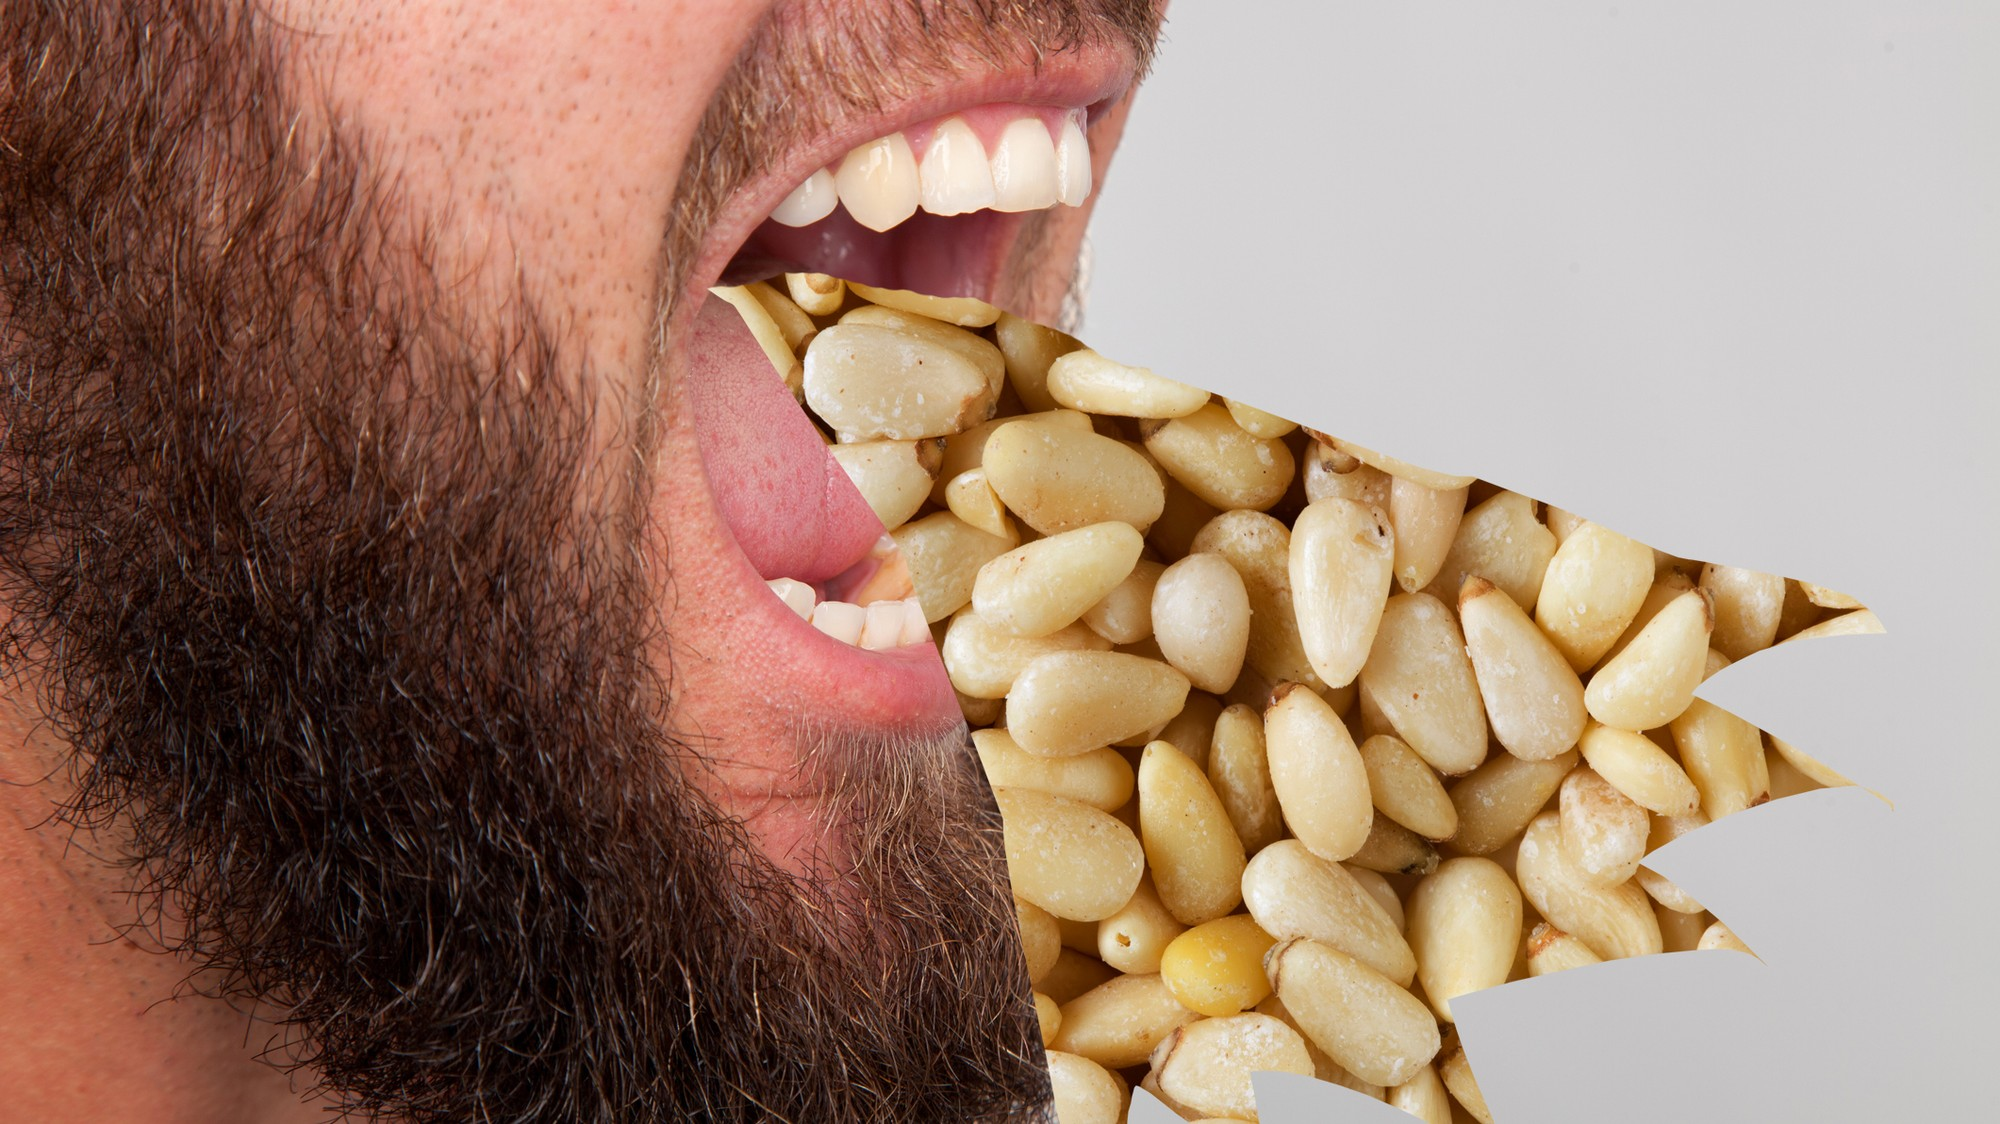 Pine Nut Syndrome' Leaves a Bitter Taste in Your Mouth